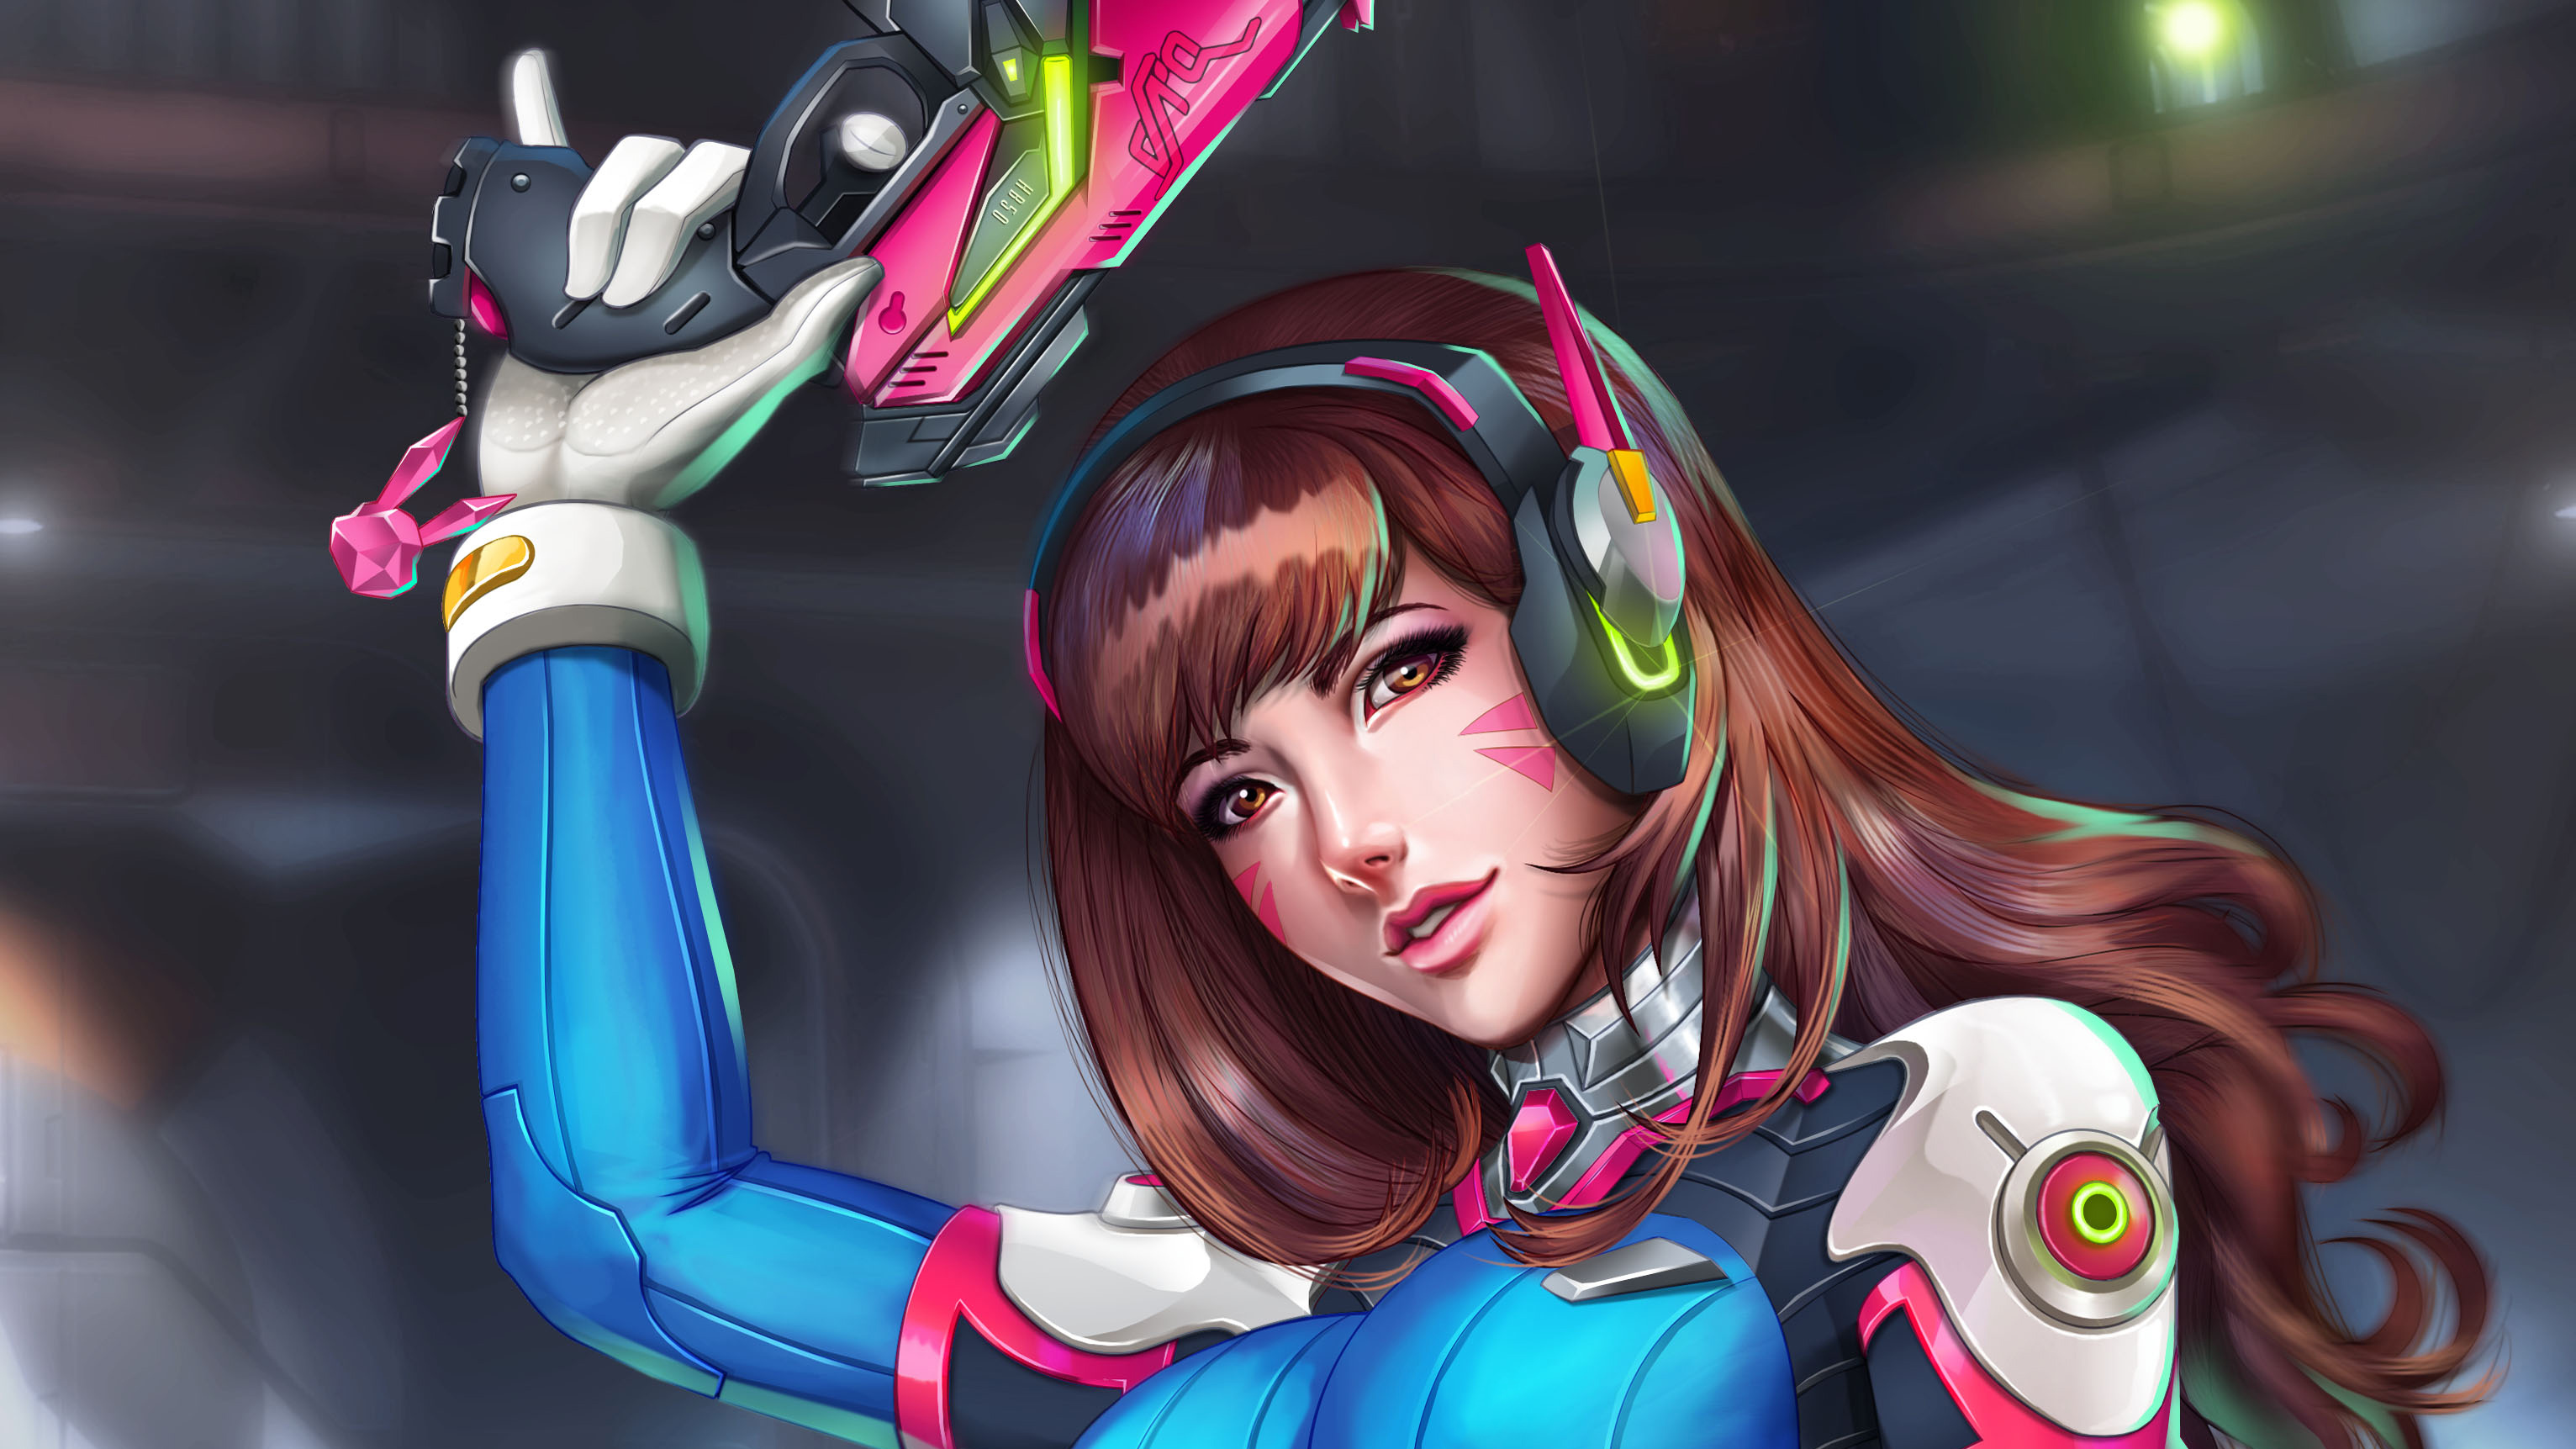 320x240 Dva Overwatch Game 4k Apple Iphone Ipod Touch Galaxy